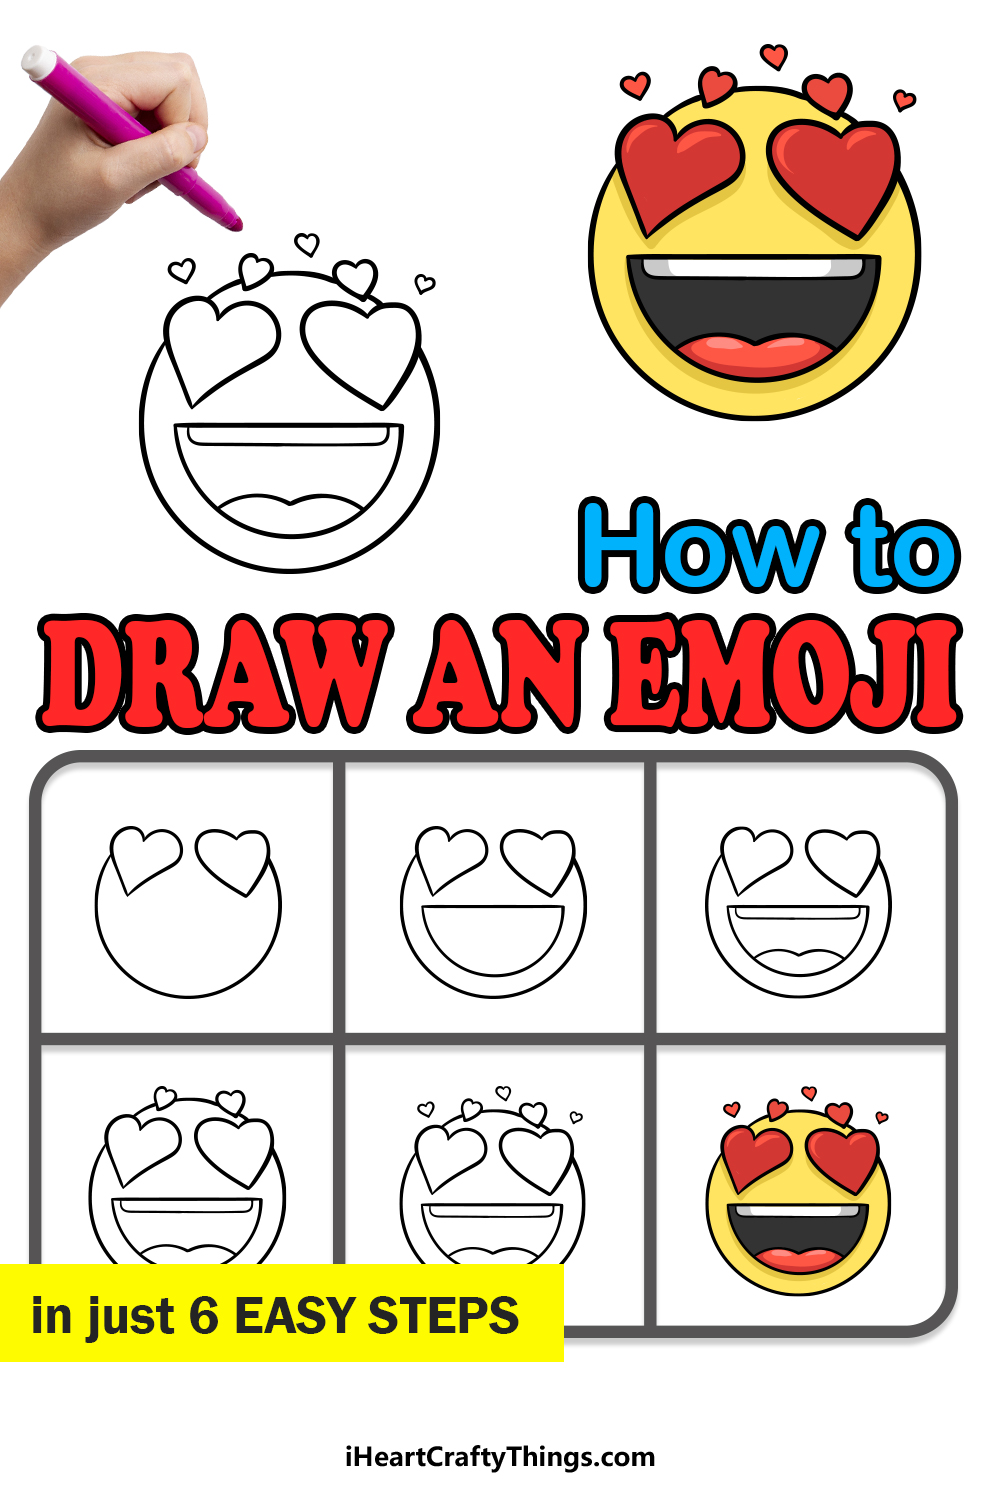 how to draw an emoji in 6 easy steps